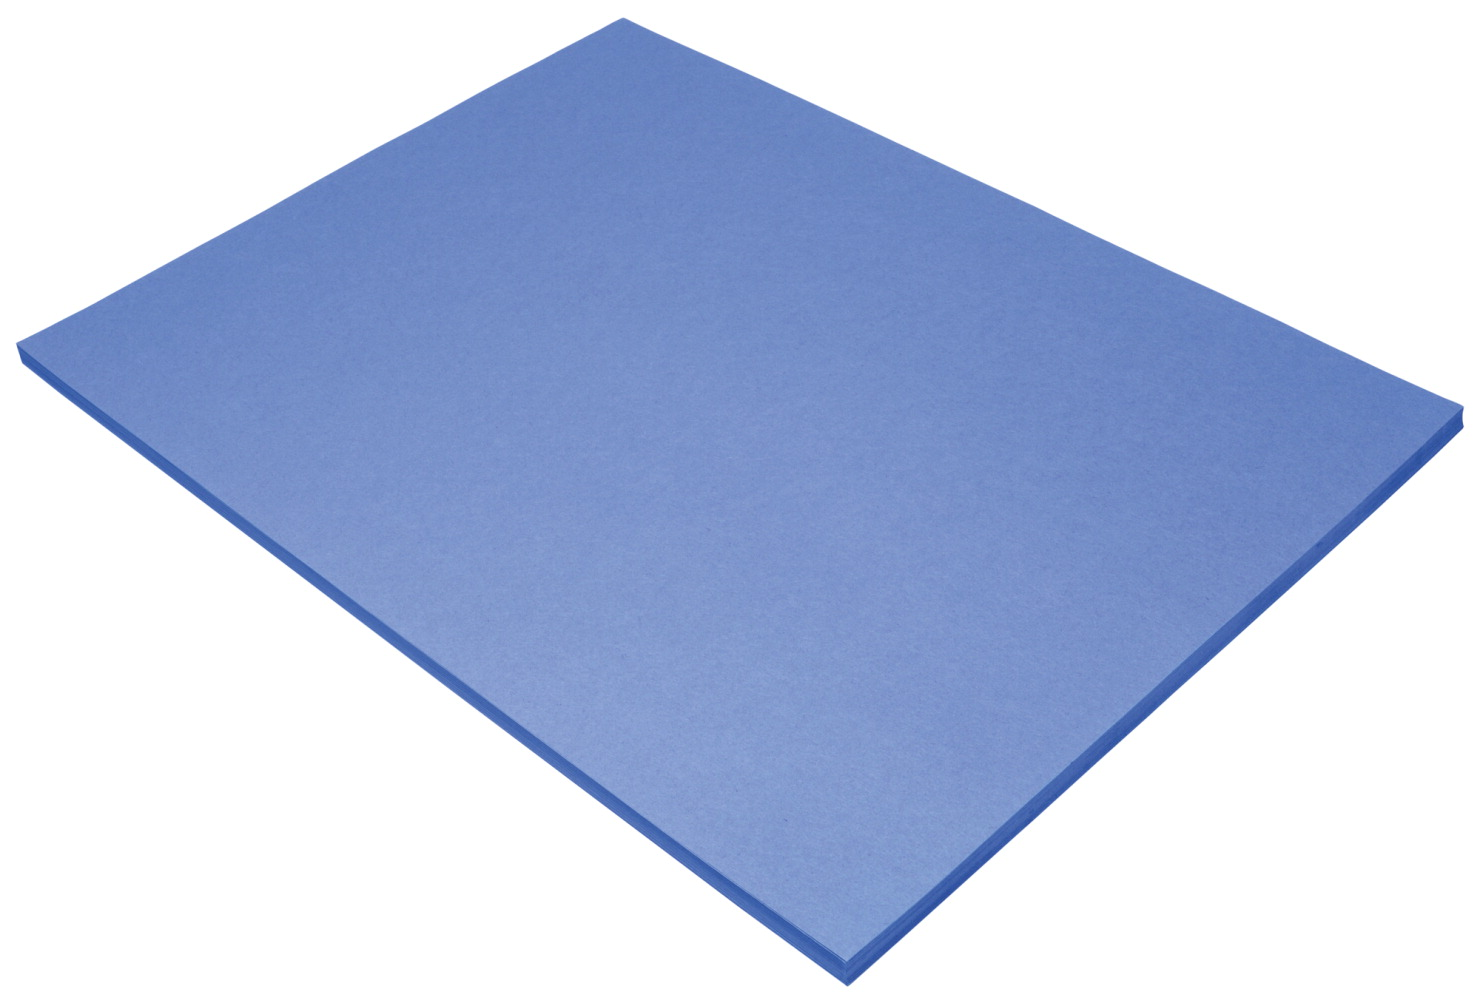 Tru-Ray Sulphite Construction Paper, 9 x 12 Inches, Blue, 50 Sheets